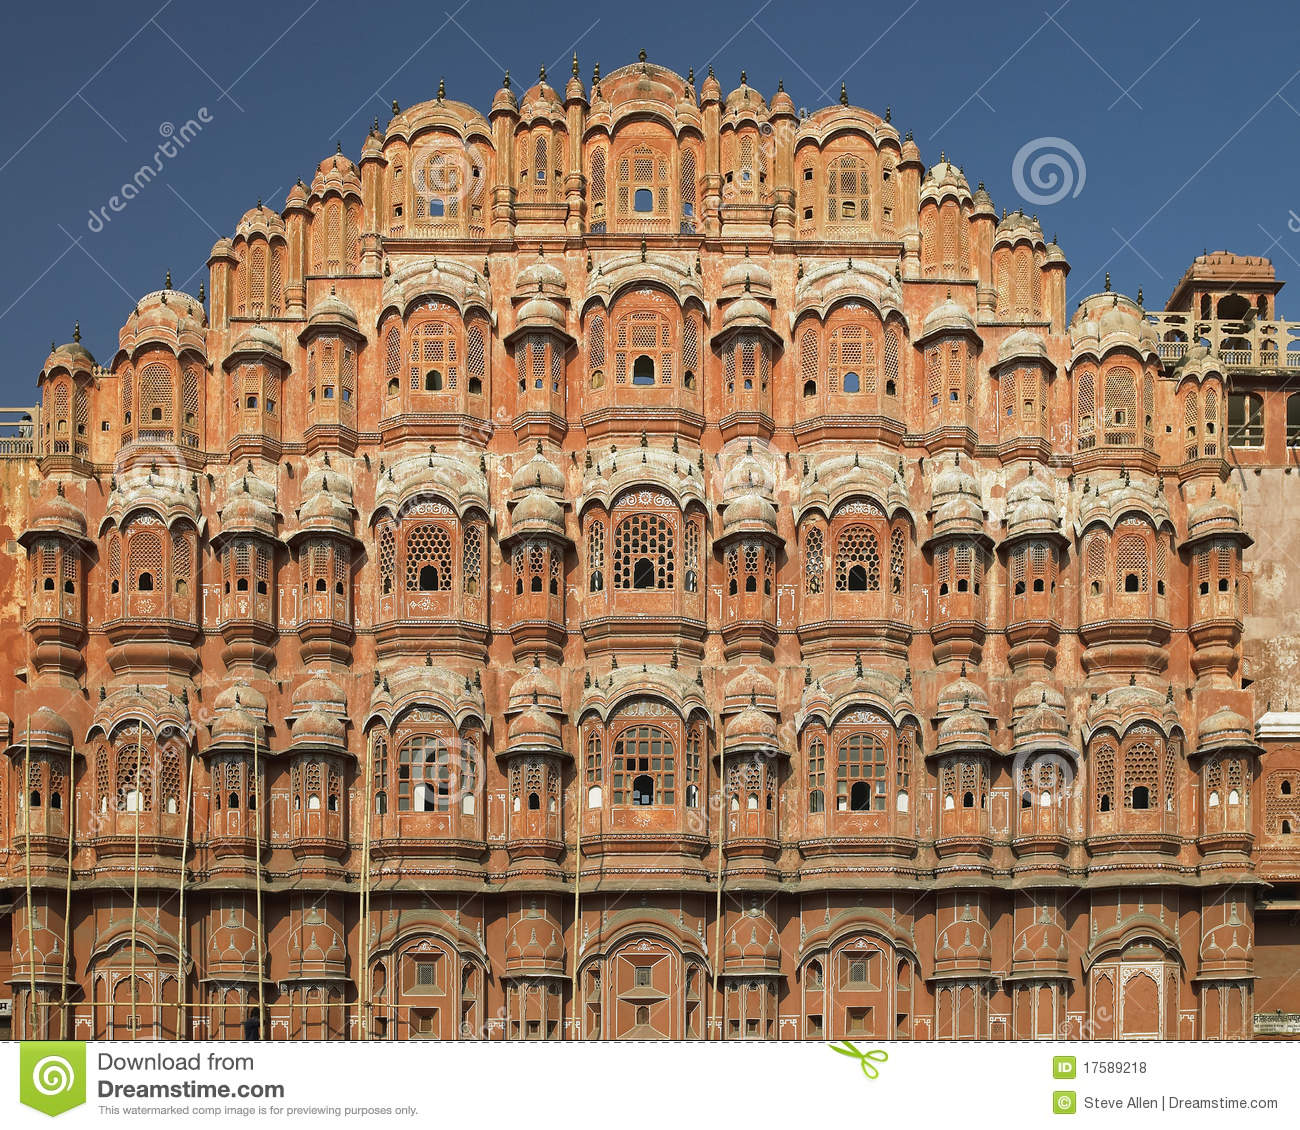 India jaipur slottwinds